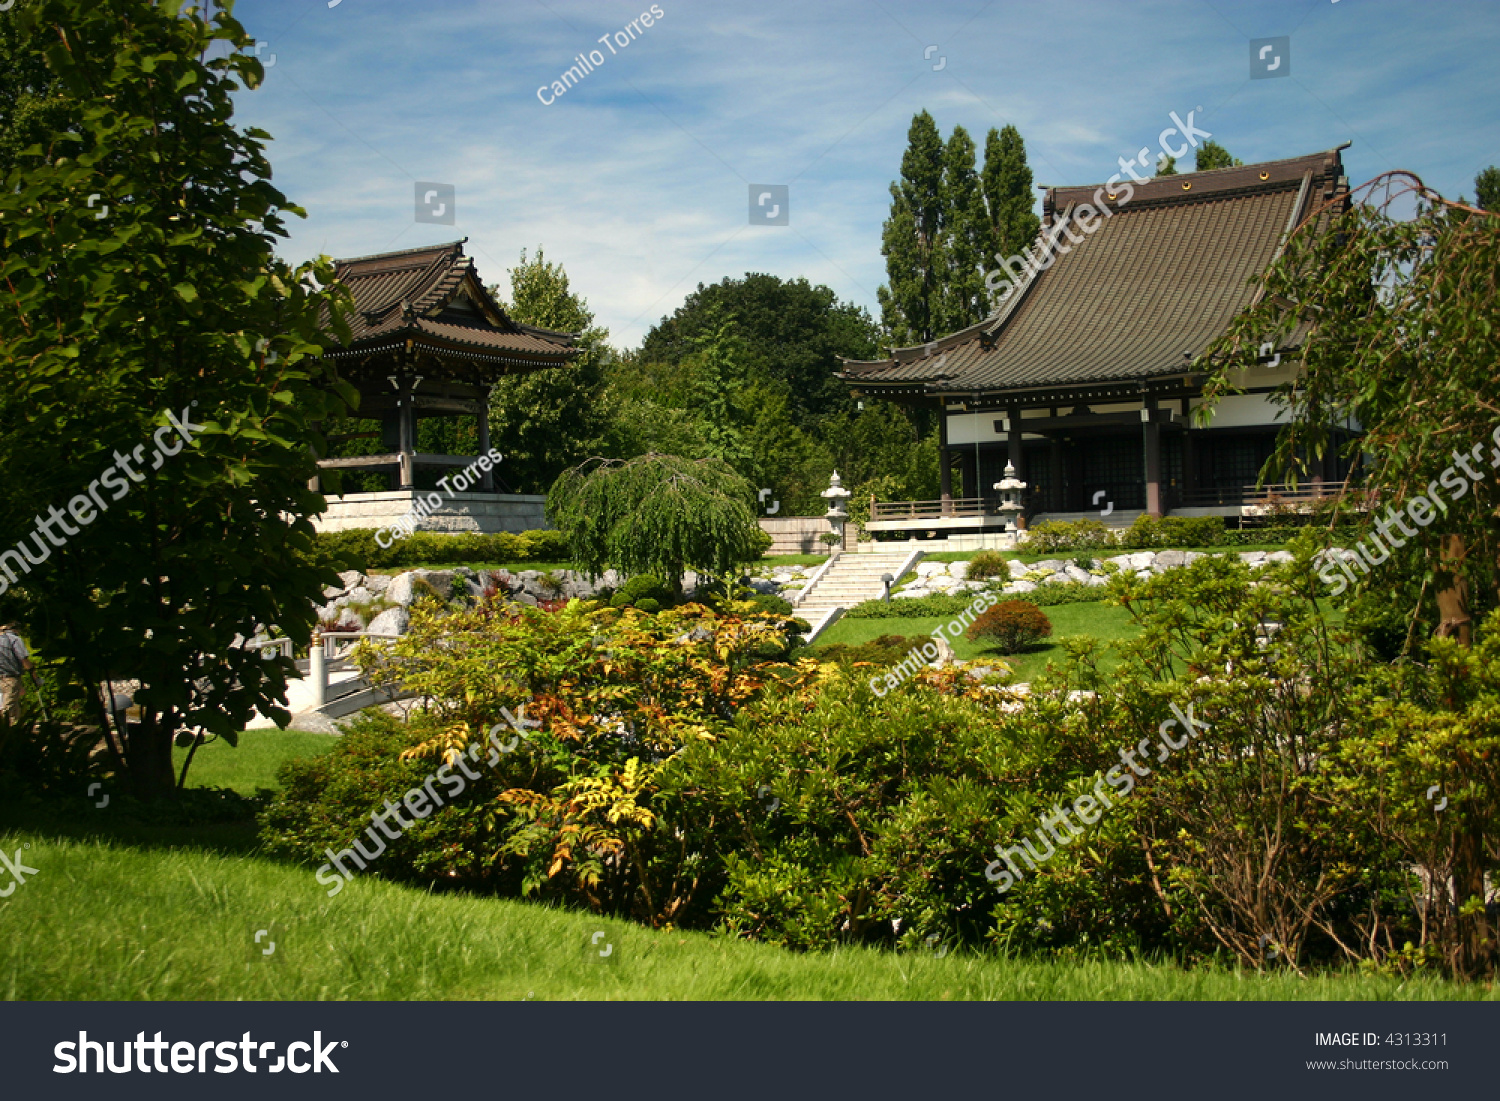 Buddhist Ceremony Traditional Japanese Garden: Traditional Japanese Garden With Buddhist Temple And Bell